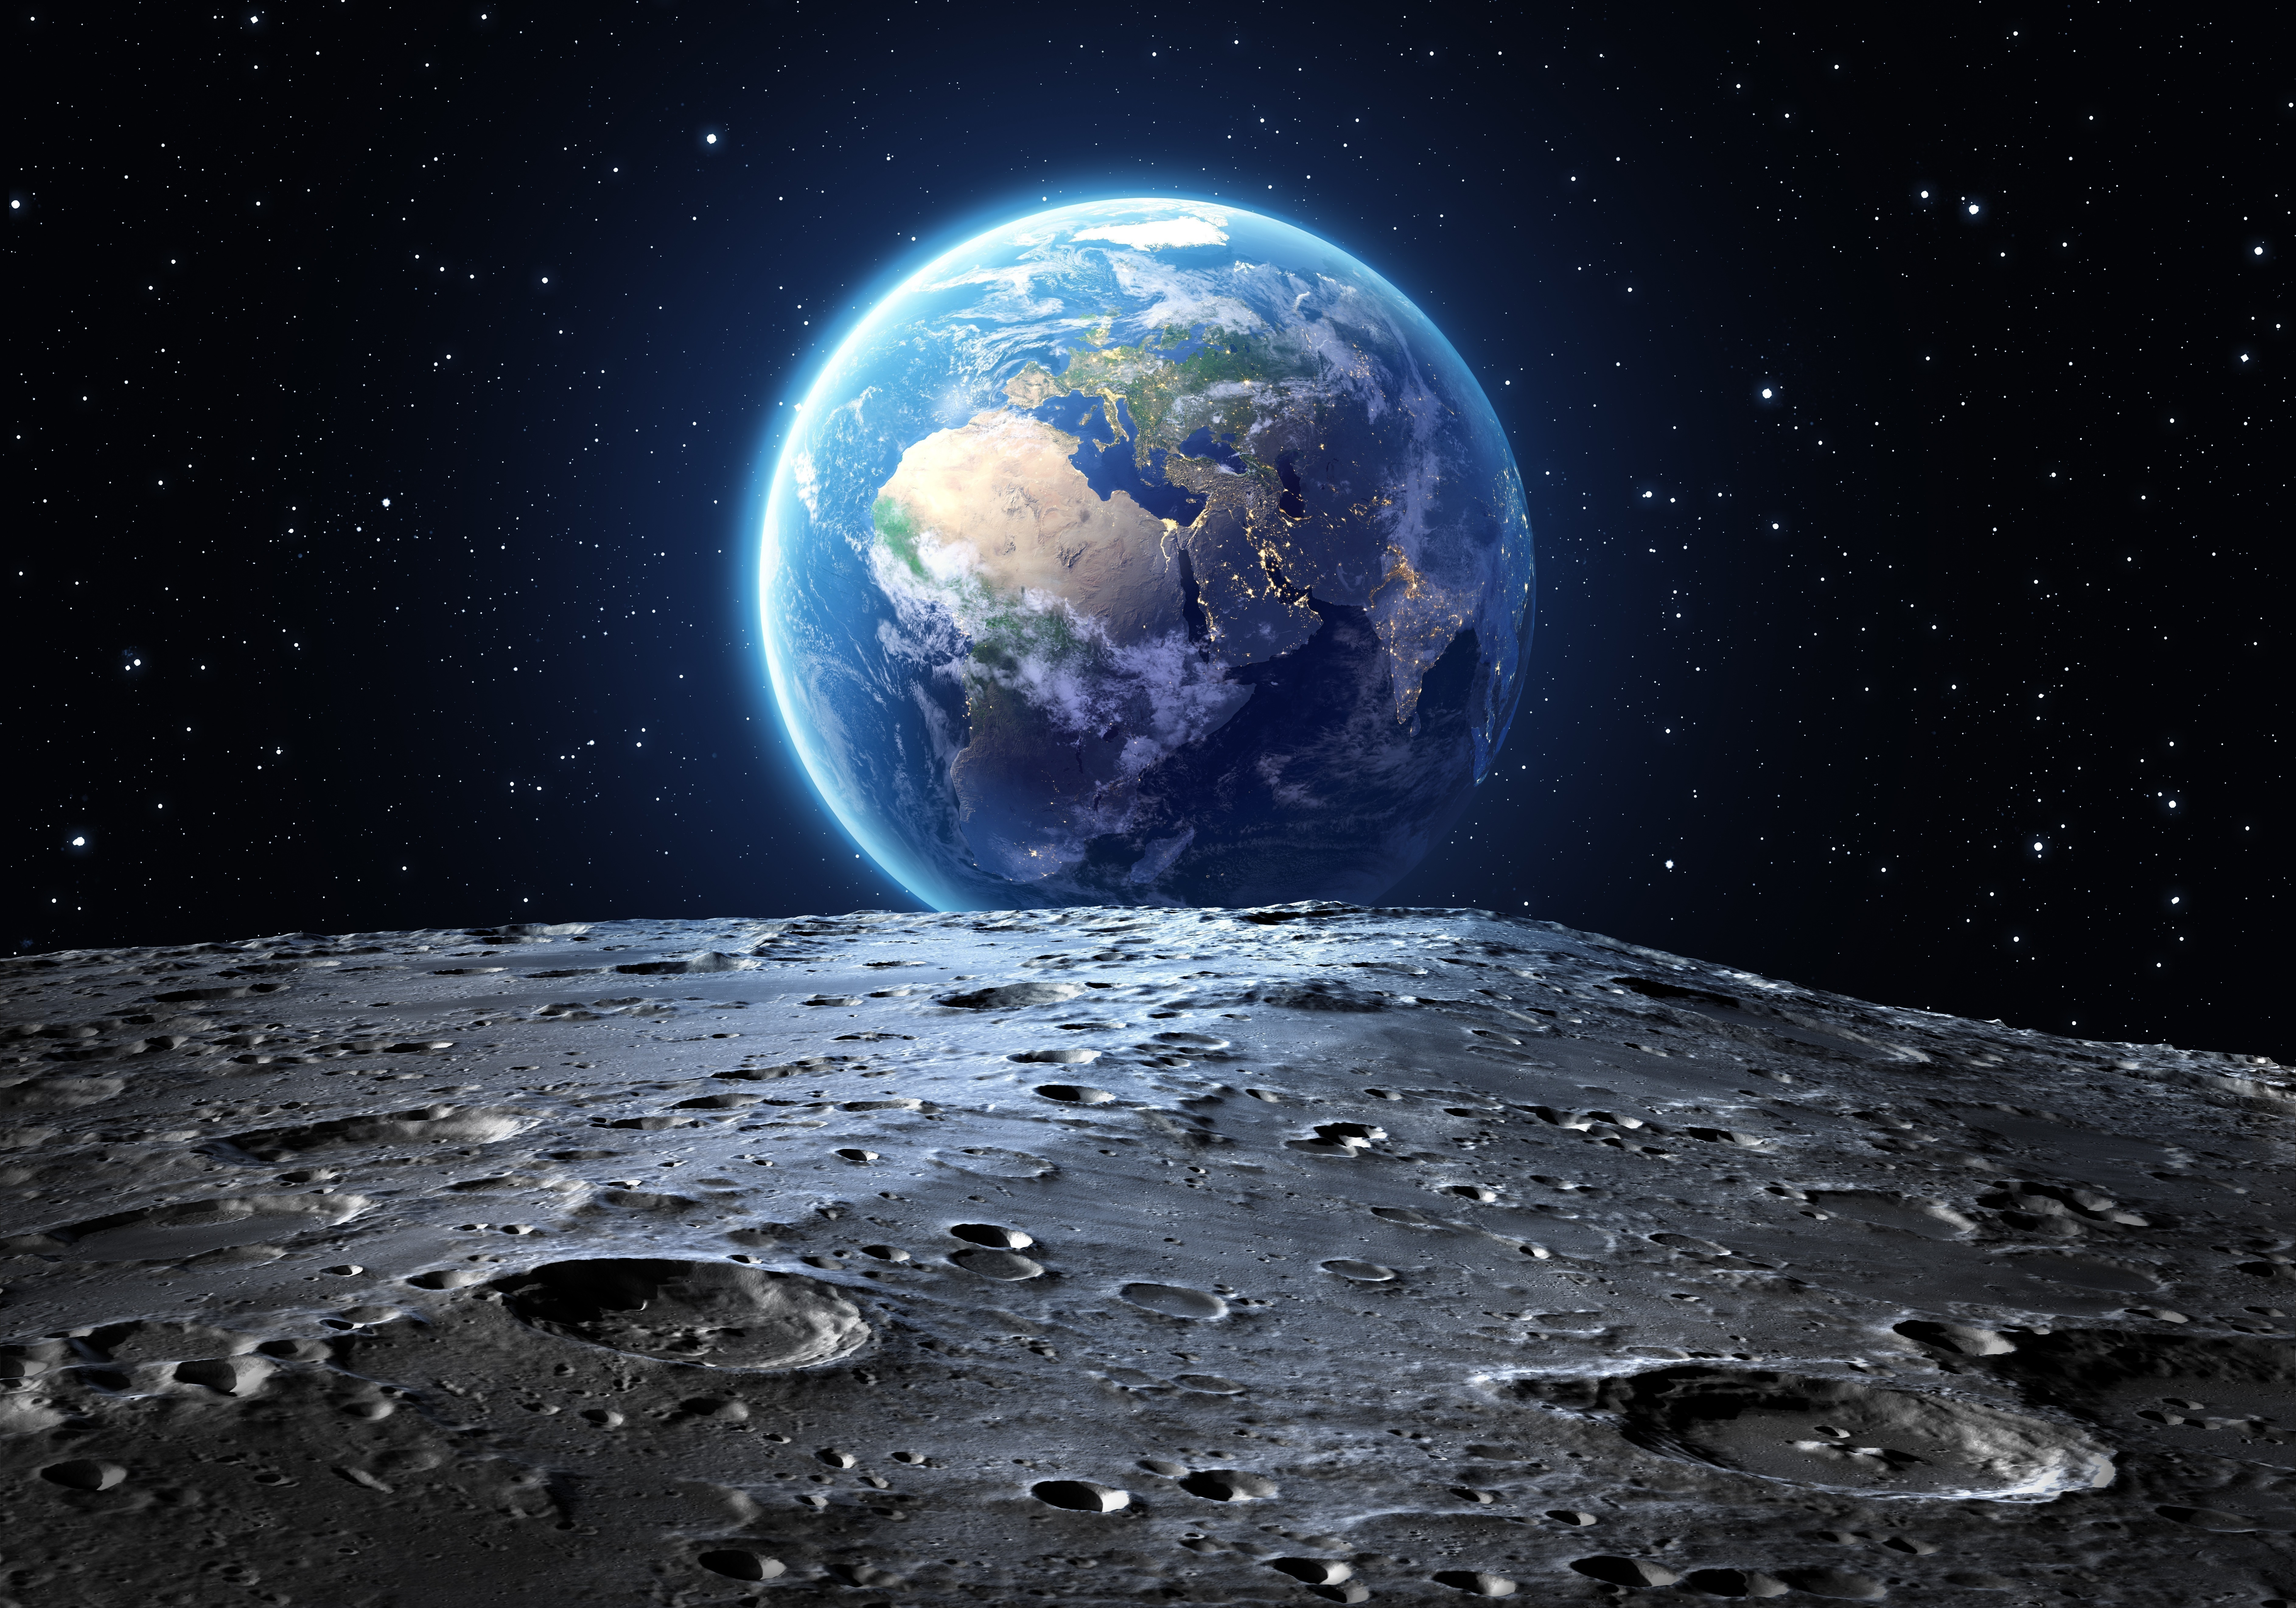 The earth seen from the moon - Sky & Space - Categories ...